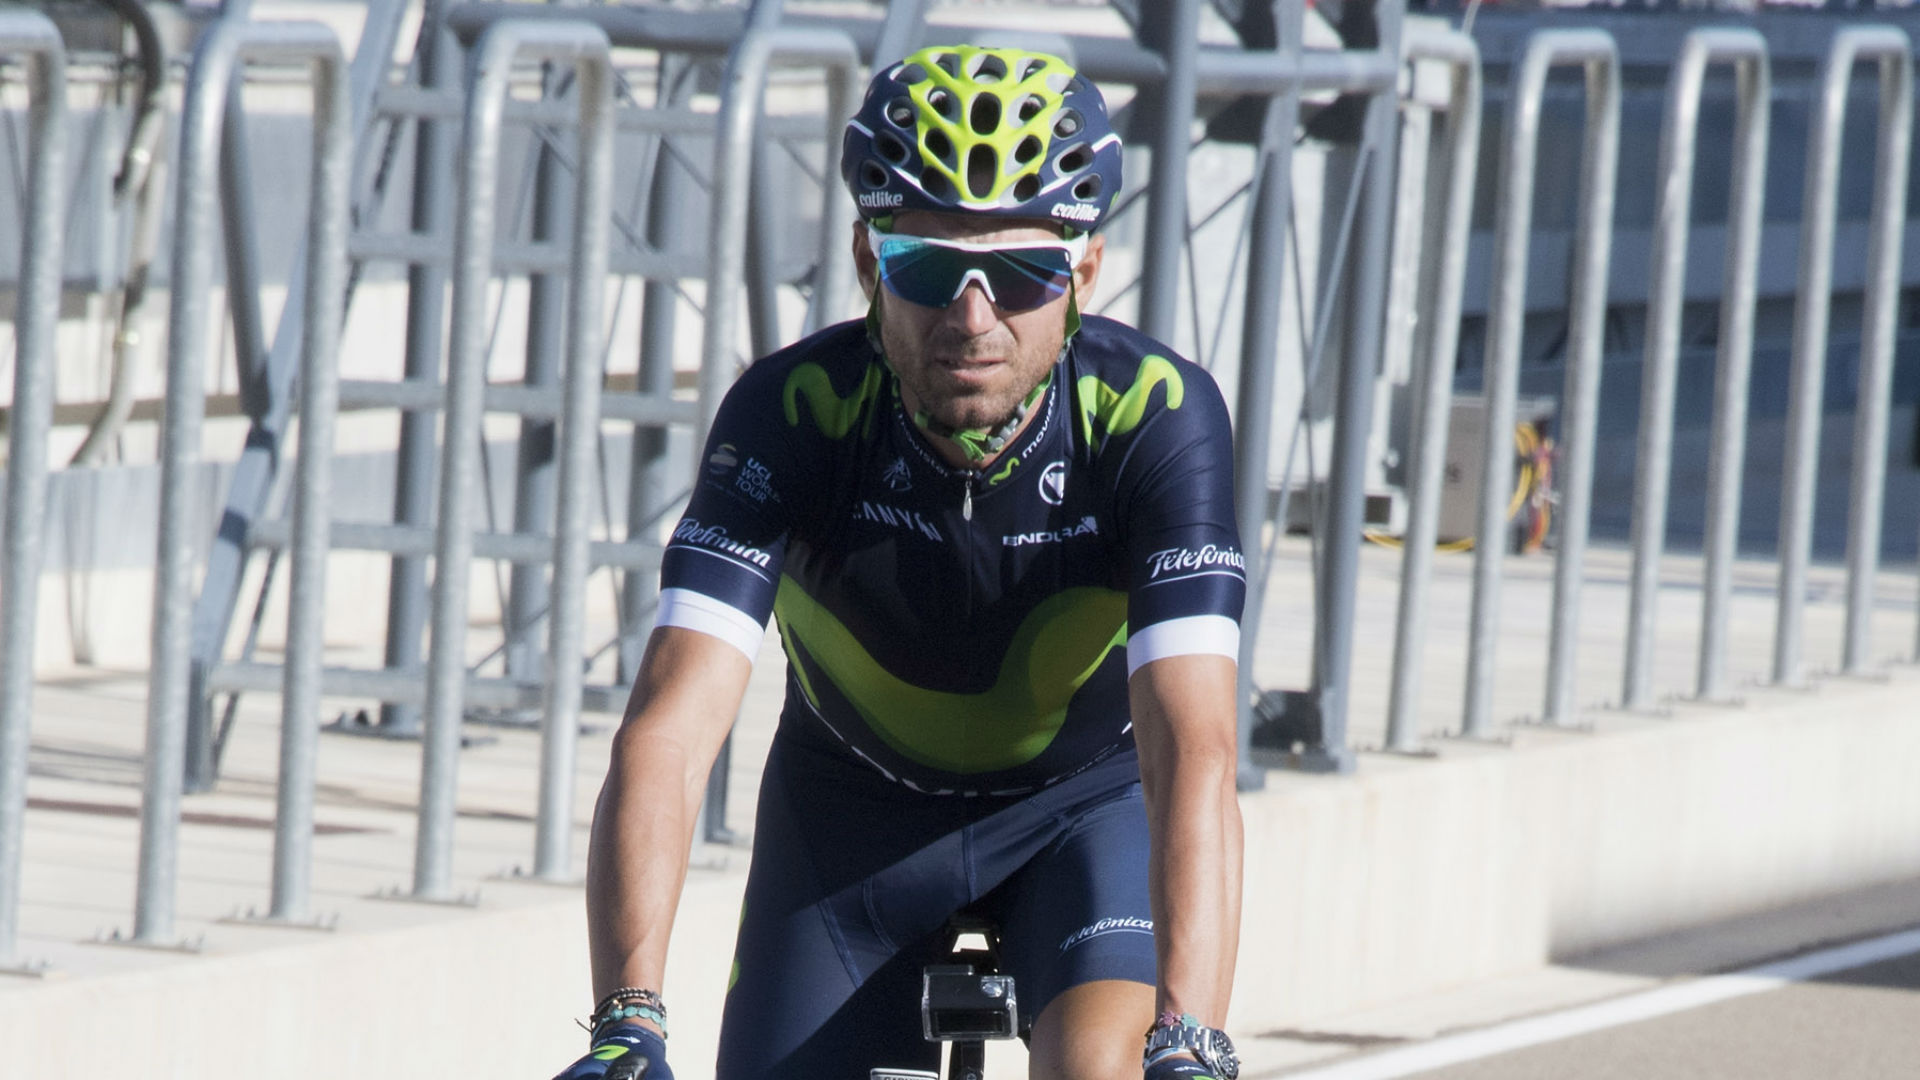 Valverde suffered broken knee cap in Tour-ending crash